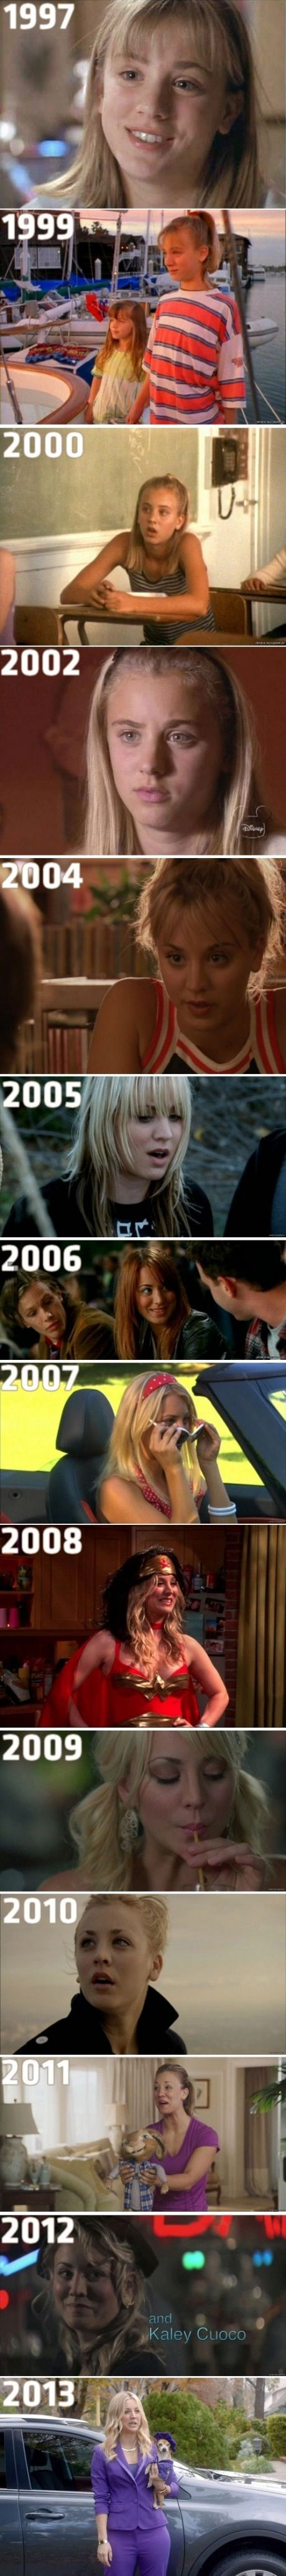 Kaley Cuoco Evolution..